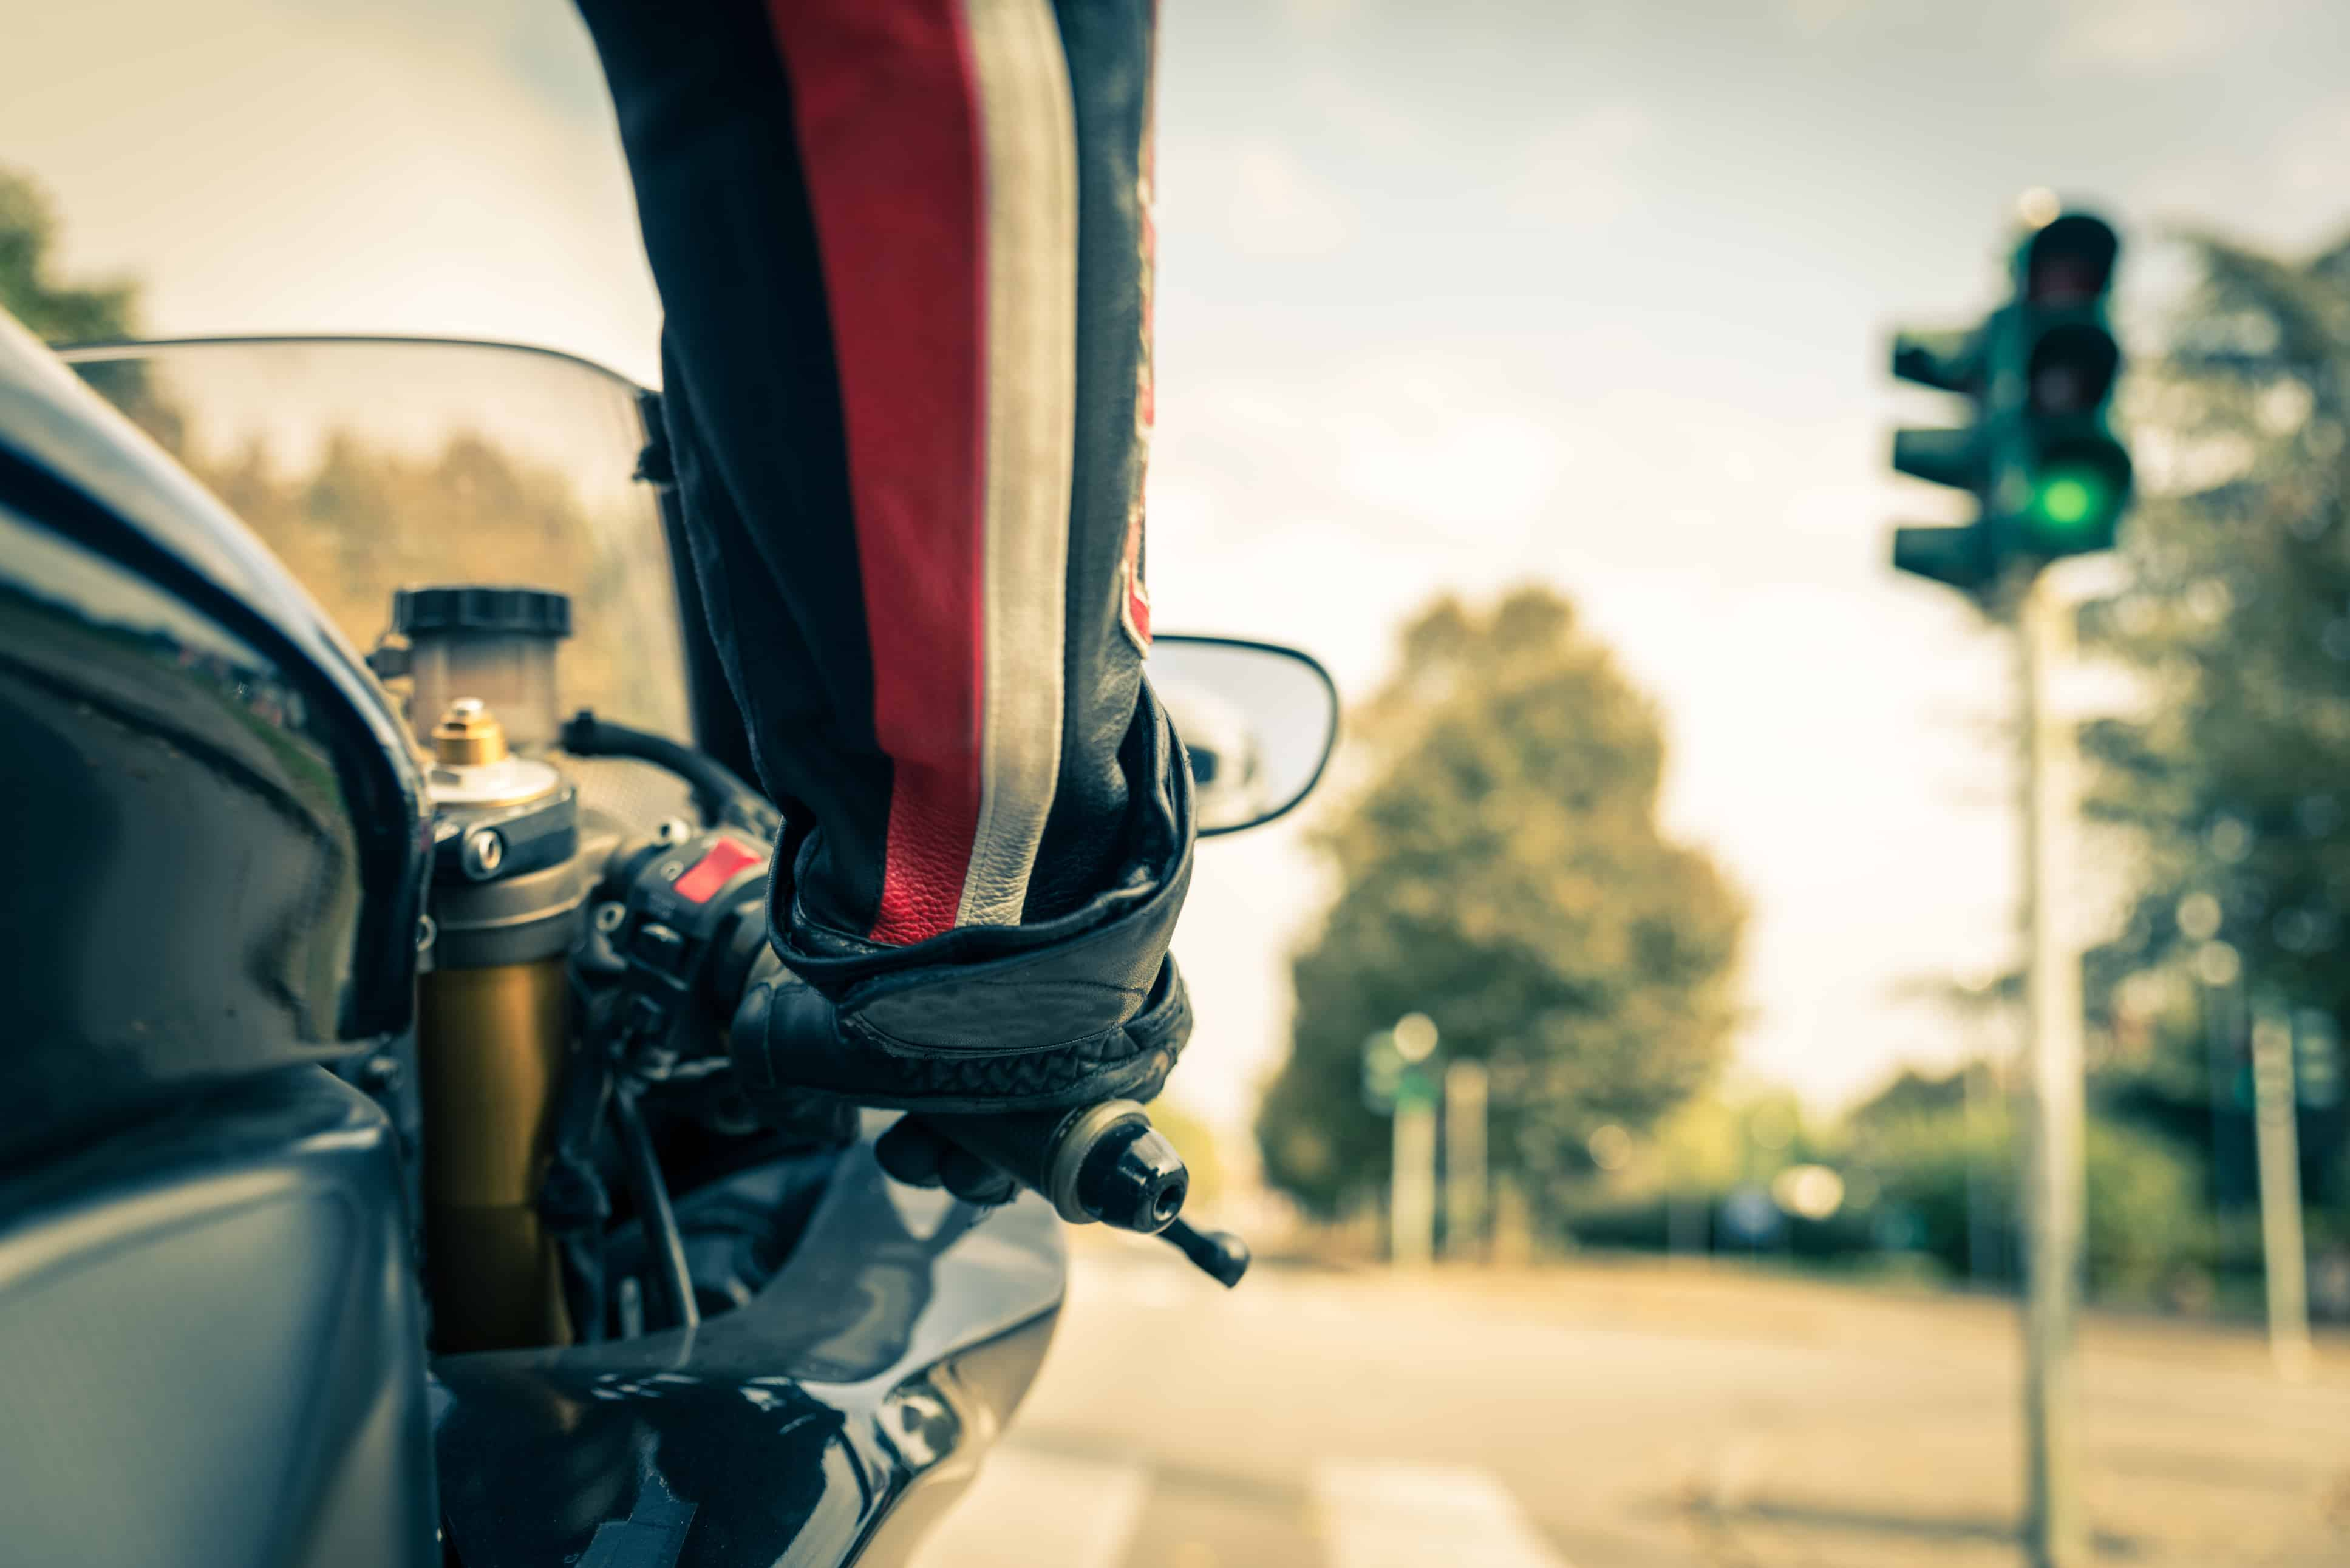 One Dead, One Injured in Motorcycle Collision on Highway 74 [Lake